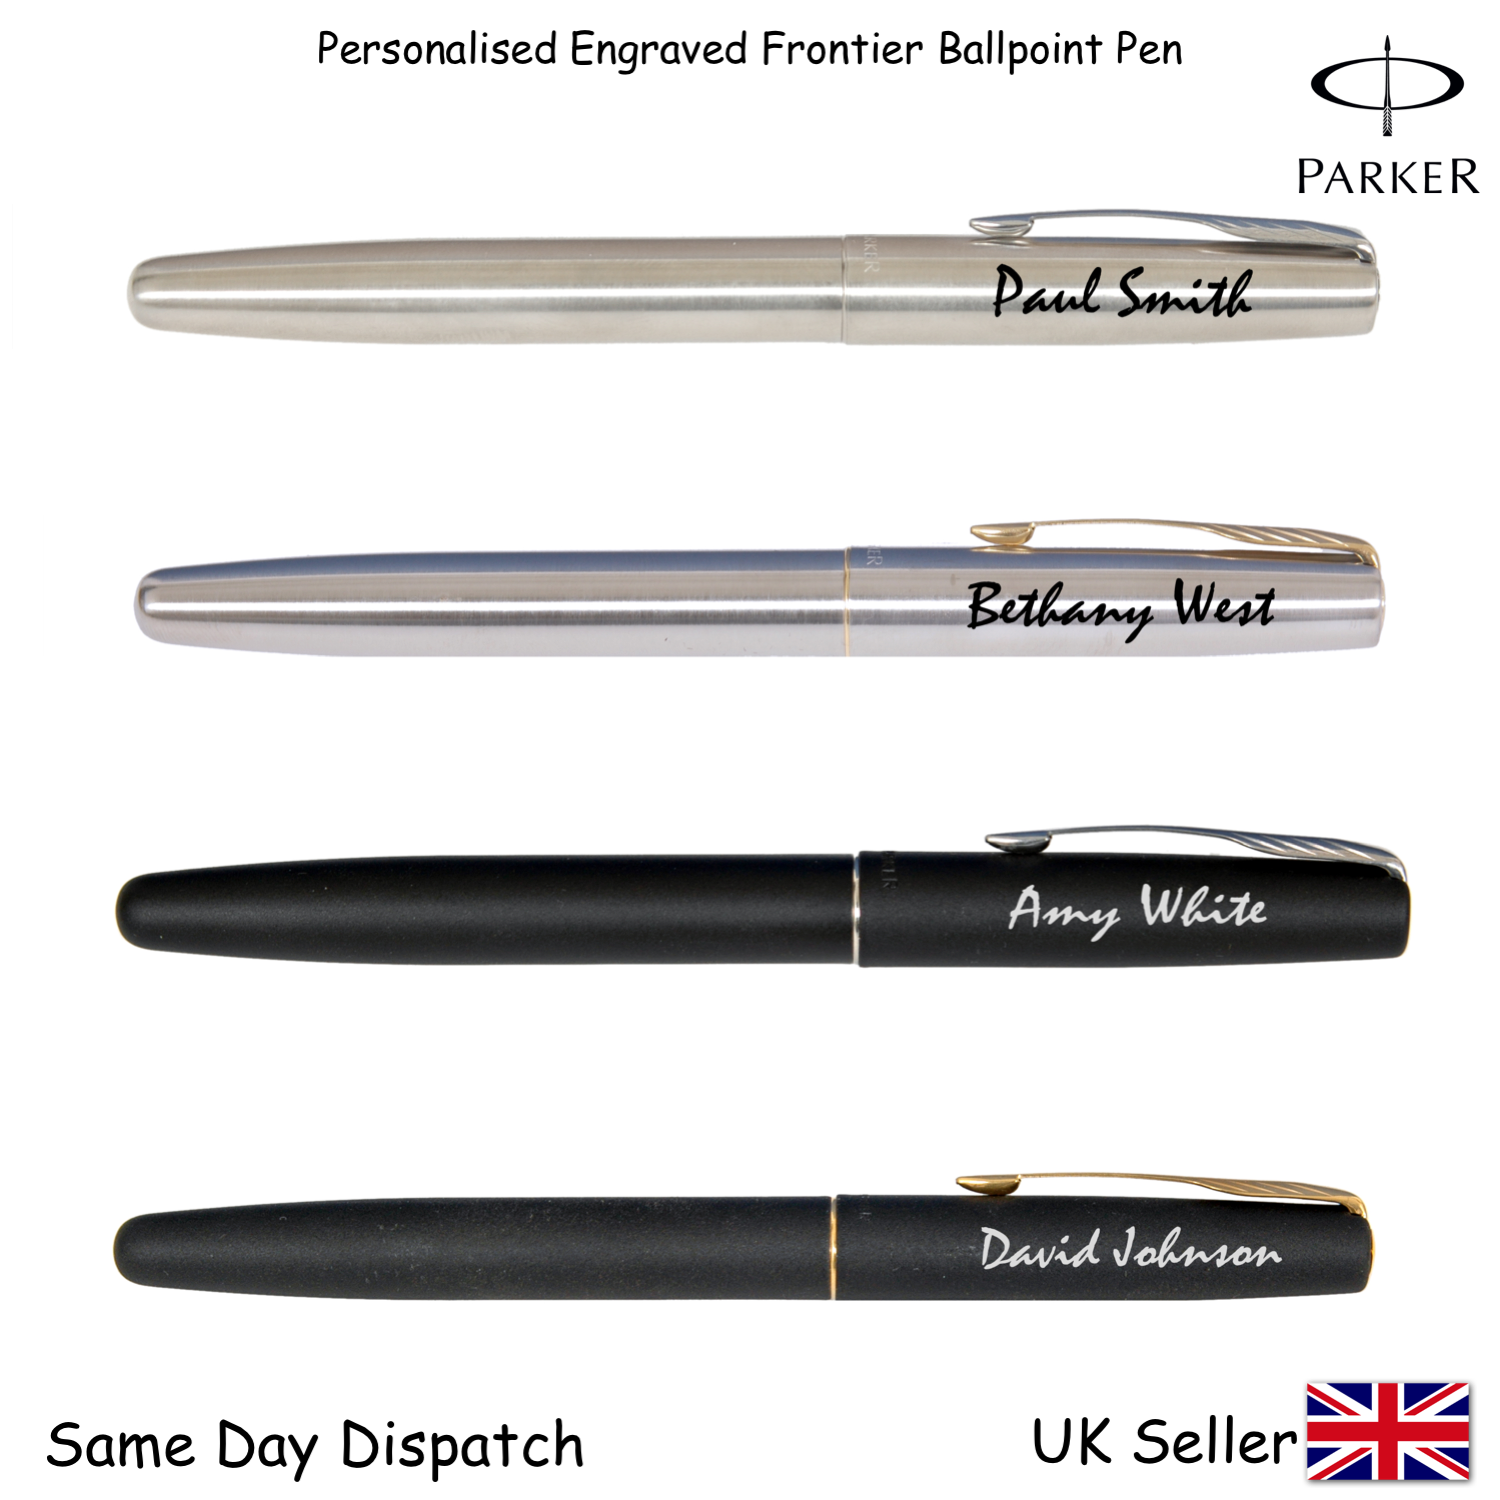 PERSONALISED ENGRAVED PARKER FRONTIER STAINLESS STEEL FOUNTAIN PEN -BLACK,Gold 3